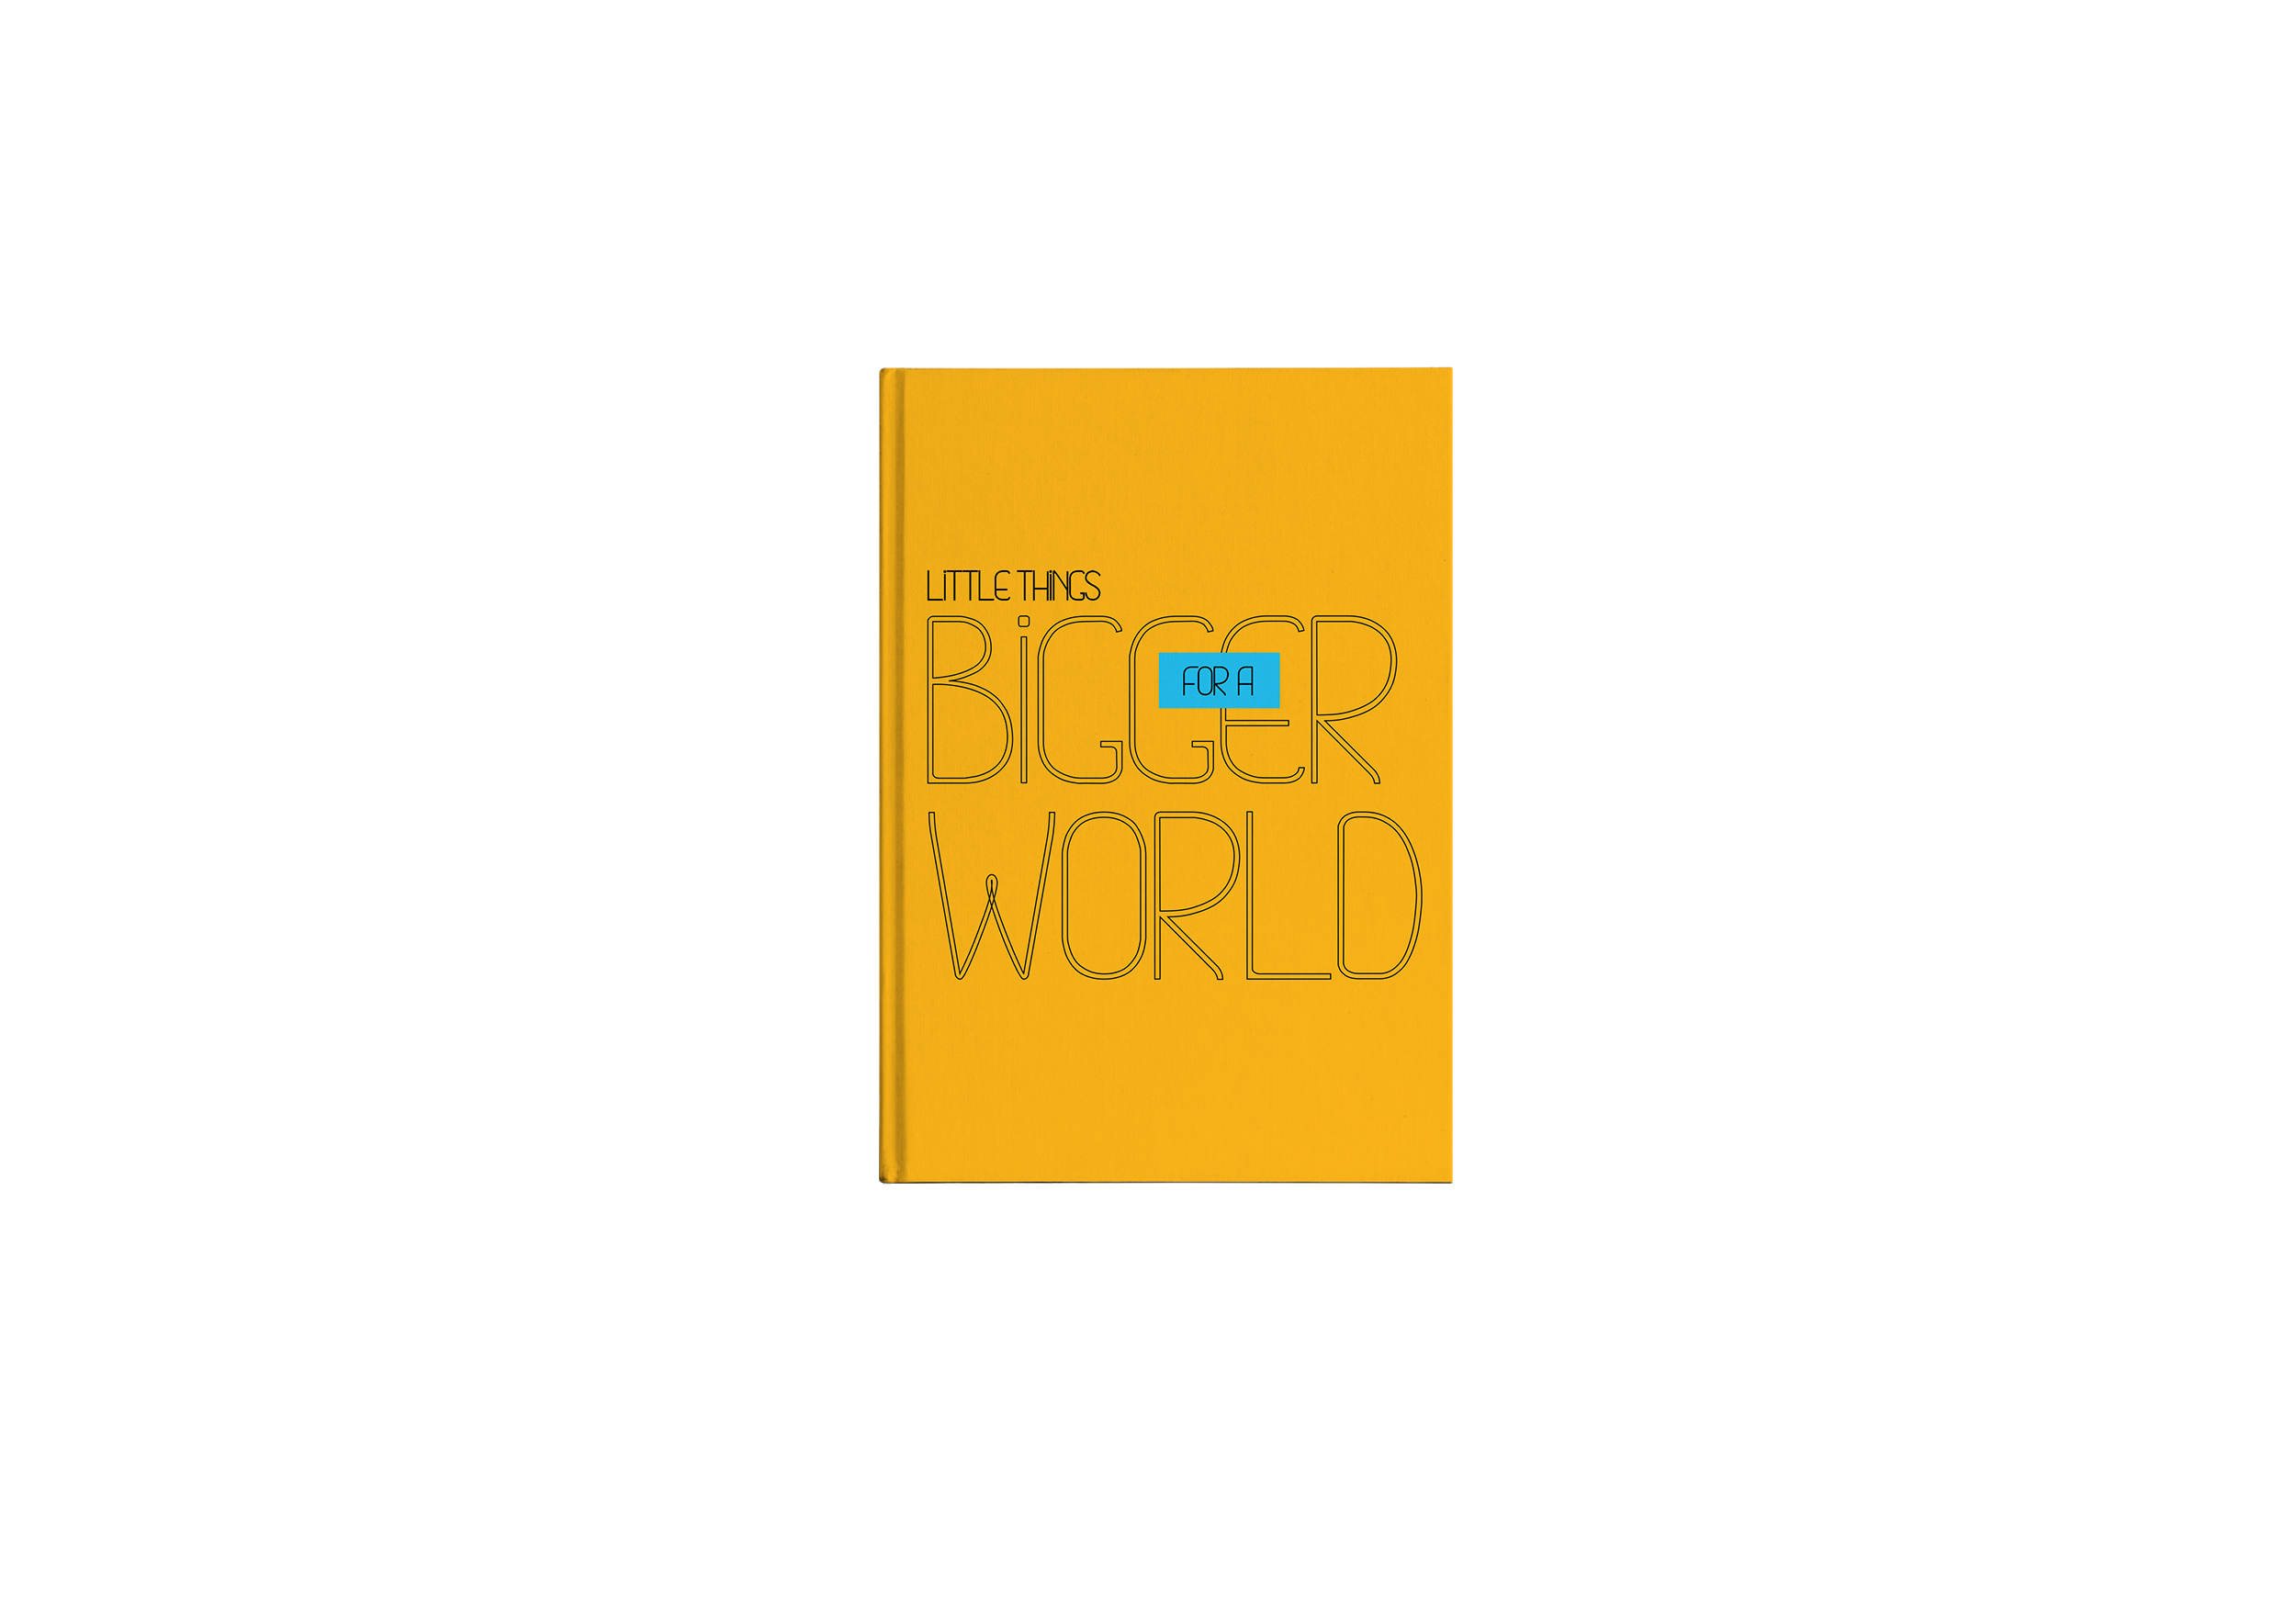 Book_cover_LTFBW_black.png